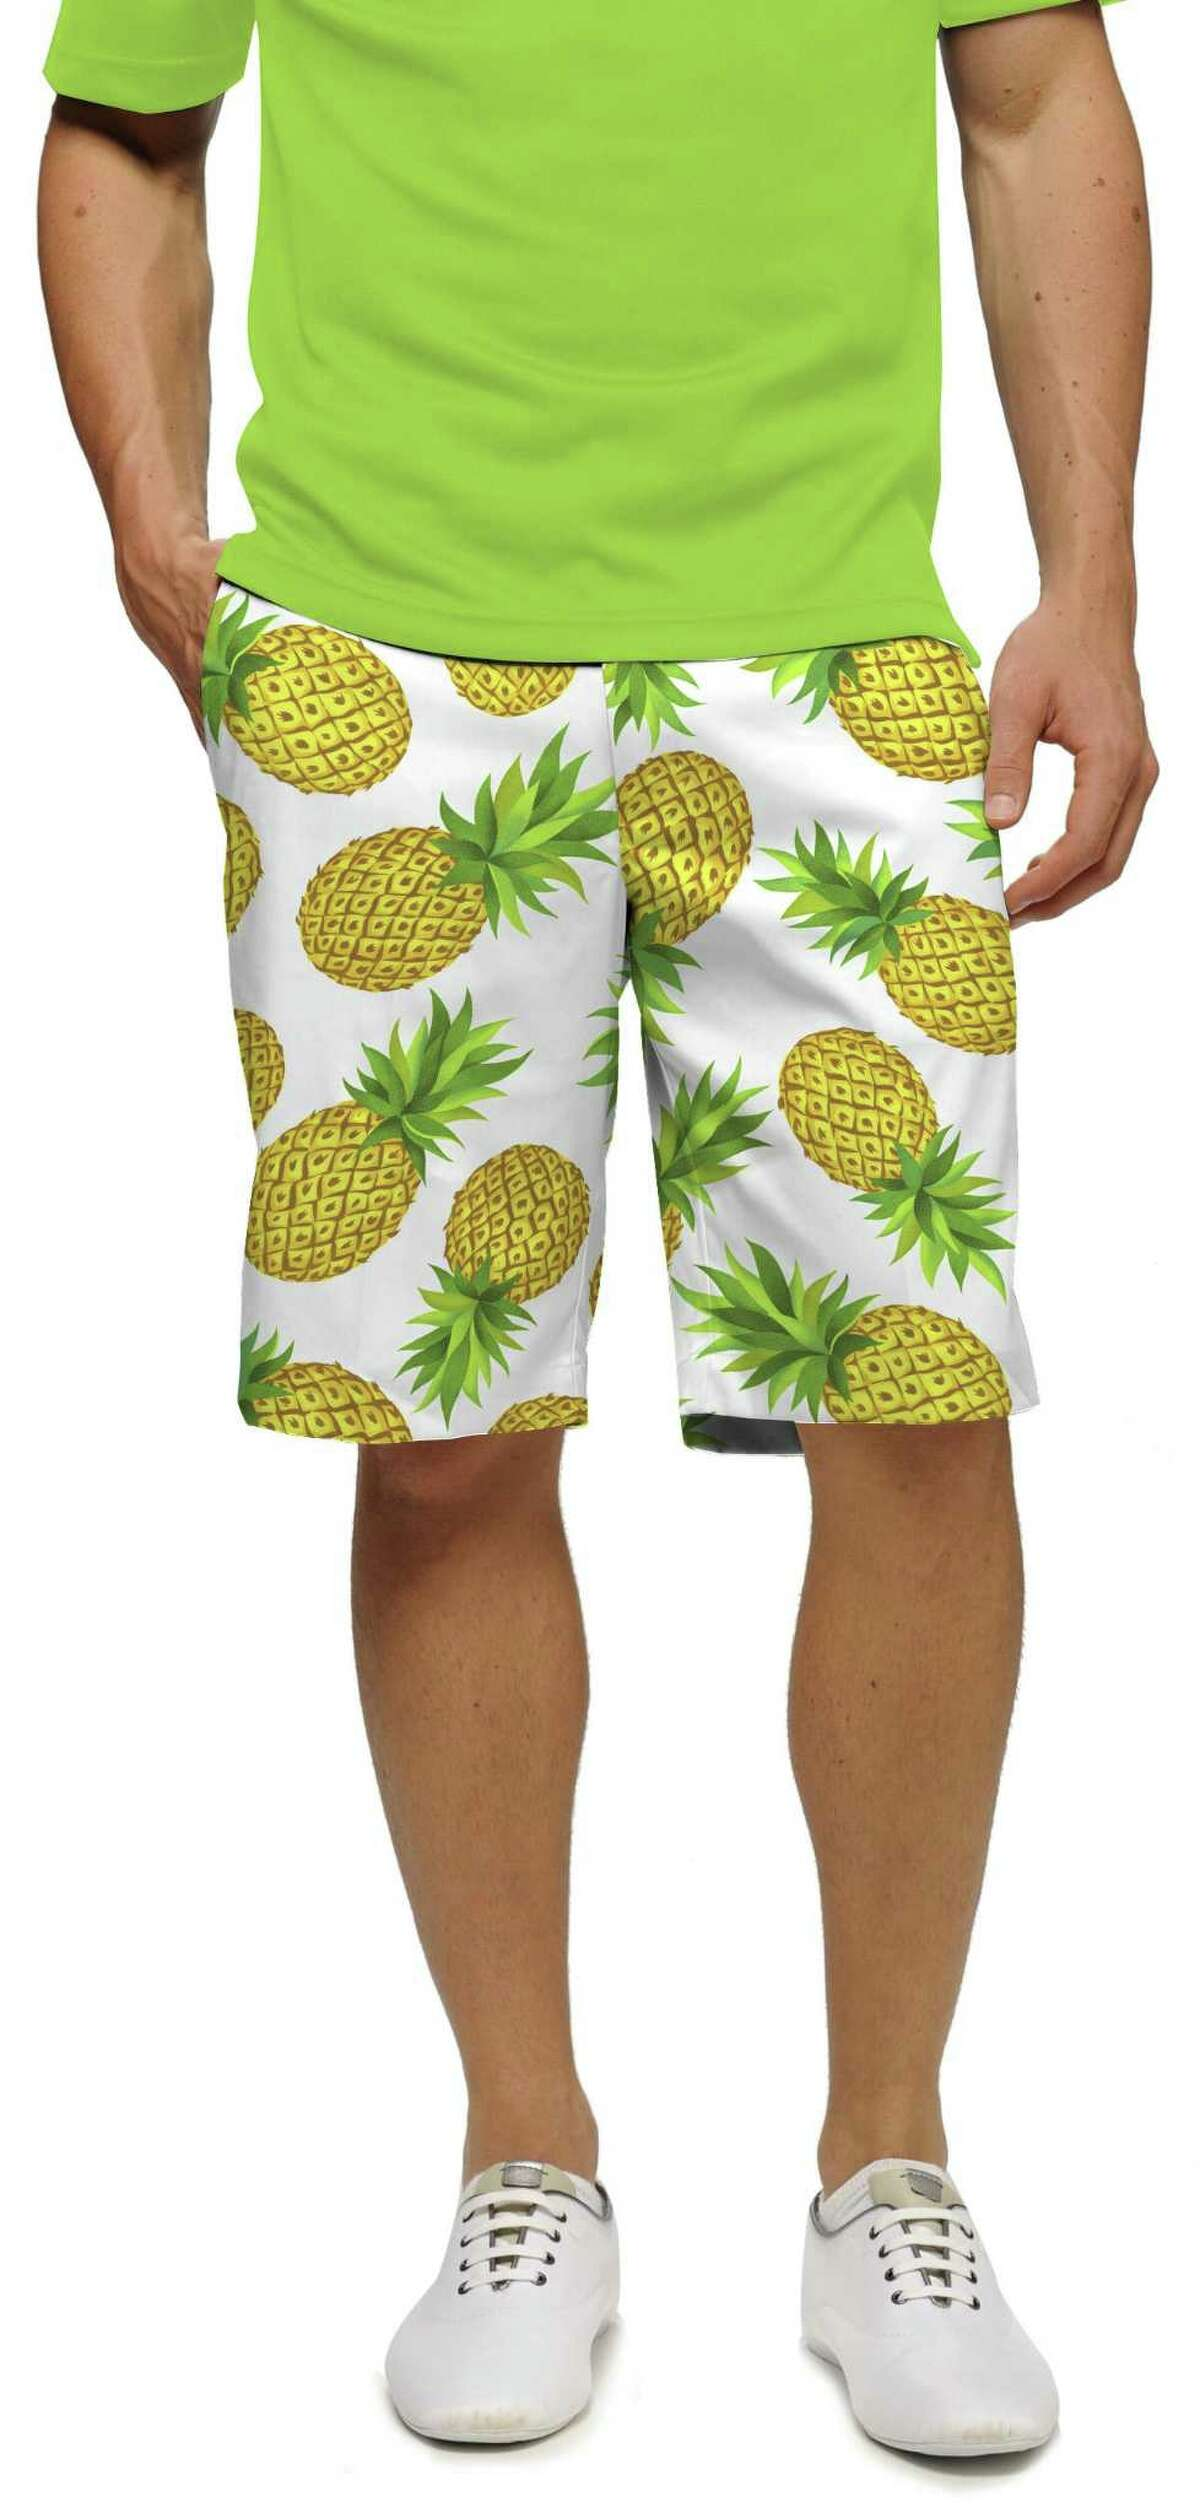 Above, pineapple pattern by Loudmouth, a California golf and lifestyle apparel company.